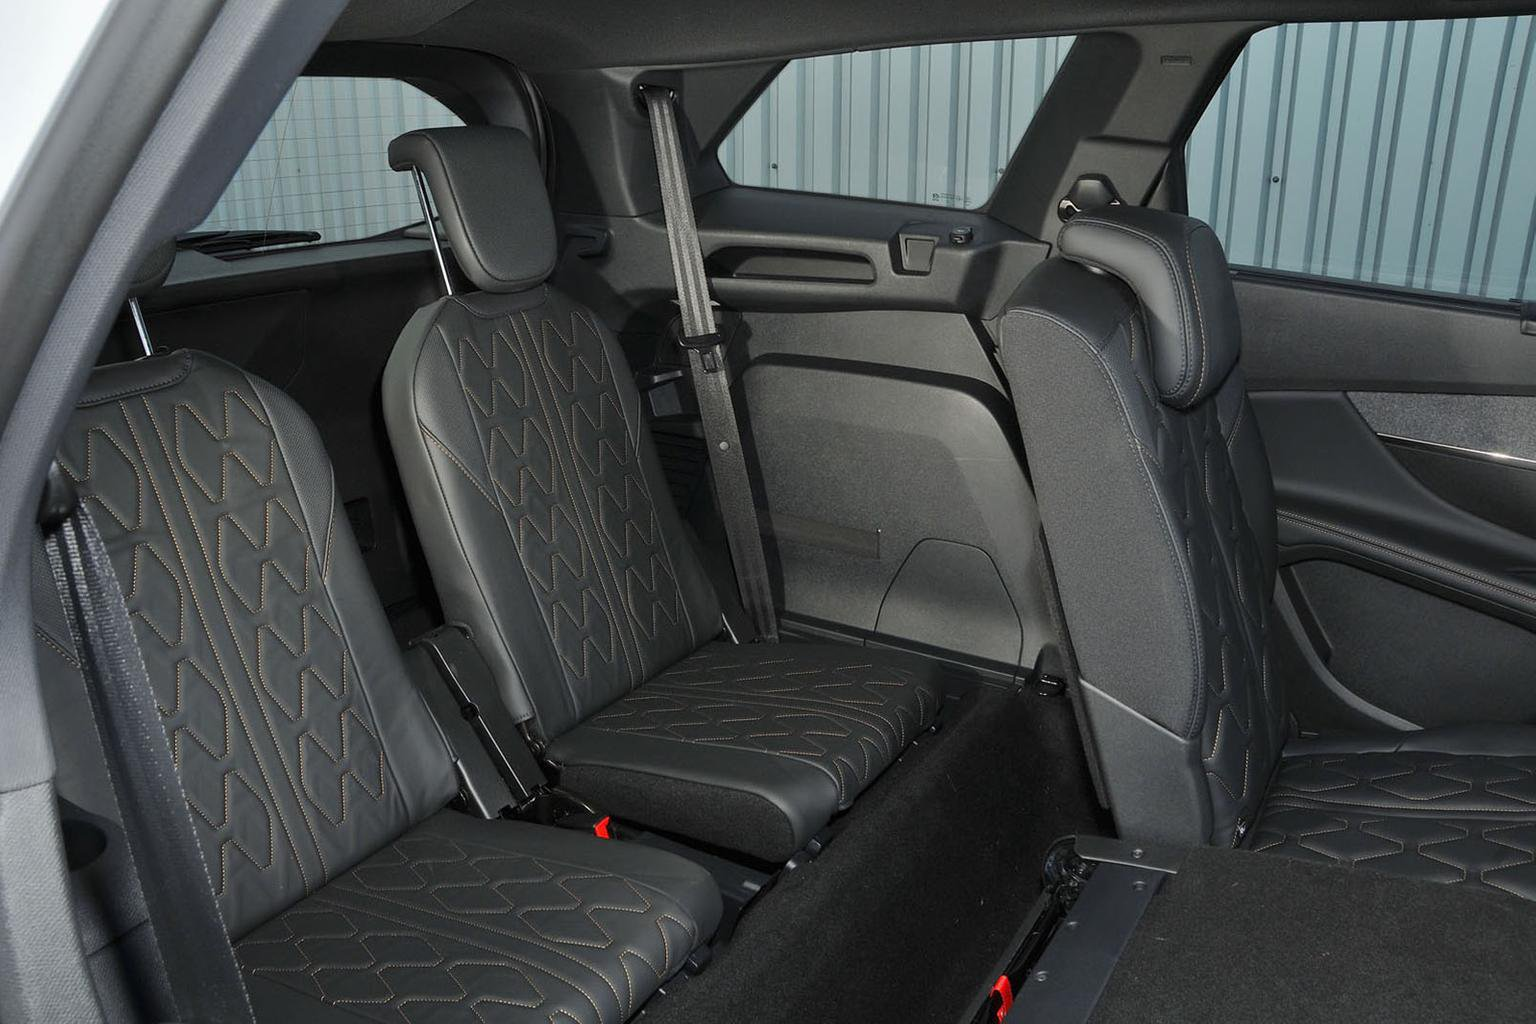 Peugeot 5008 Boot Space Size Seats What Car